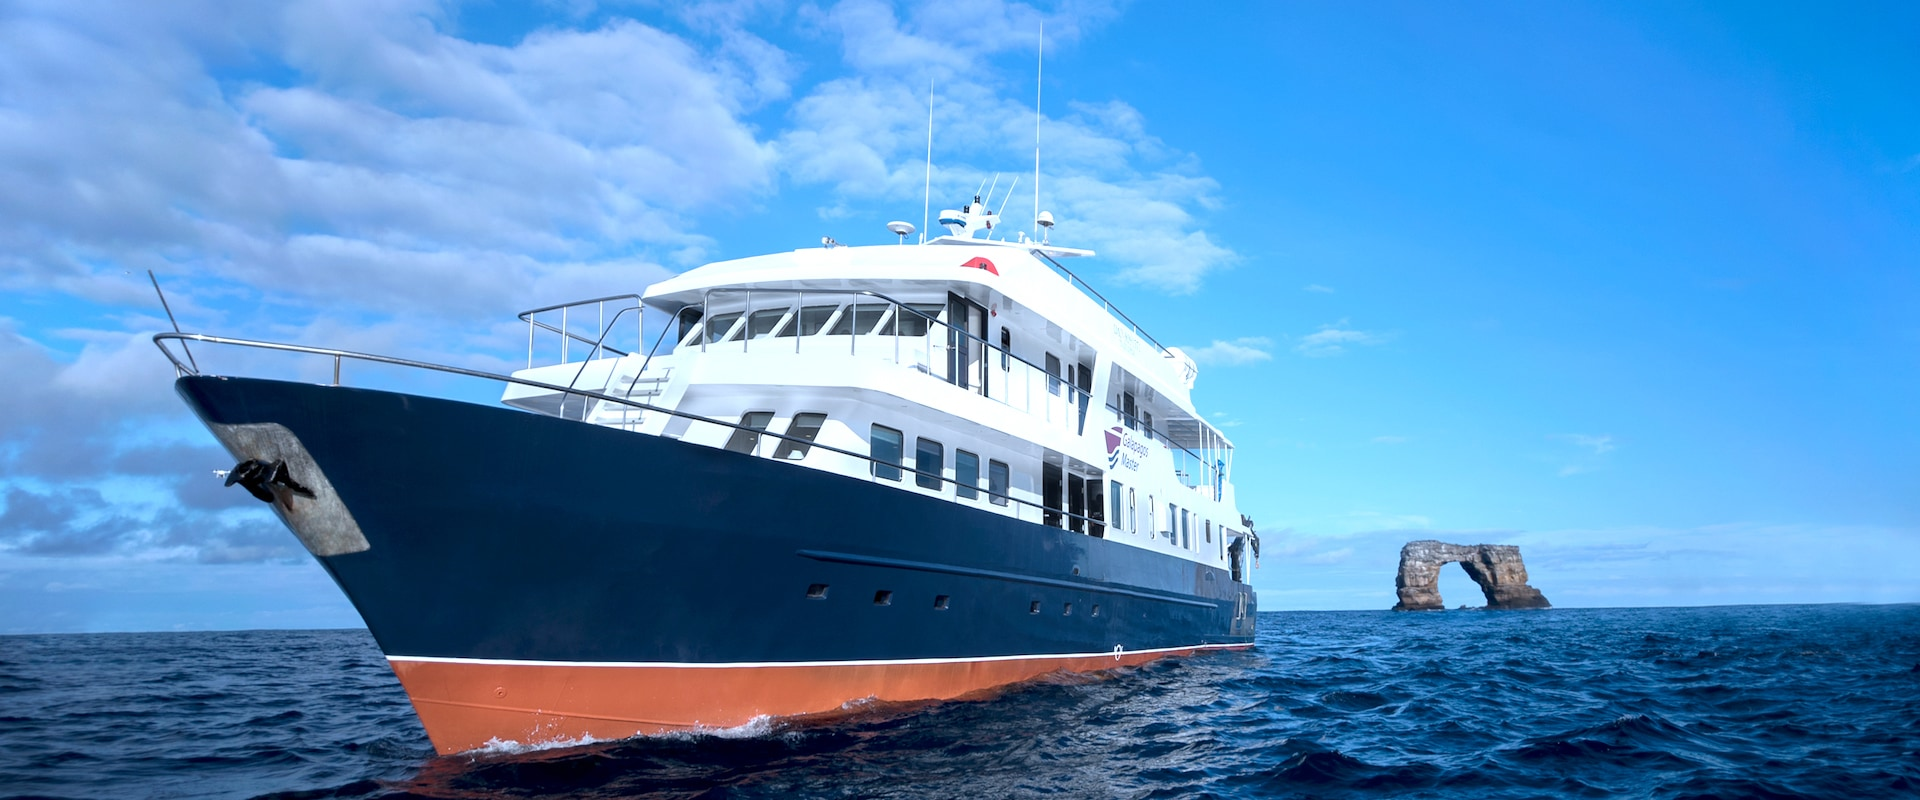 Worldwide Dive & Sail Liveaboard Fleet